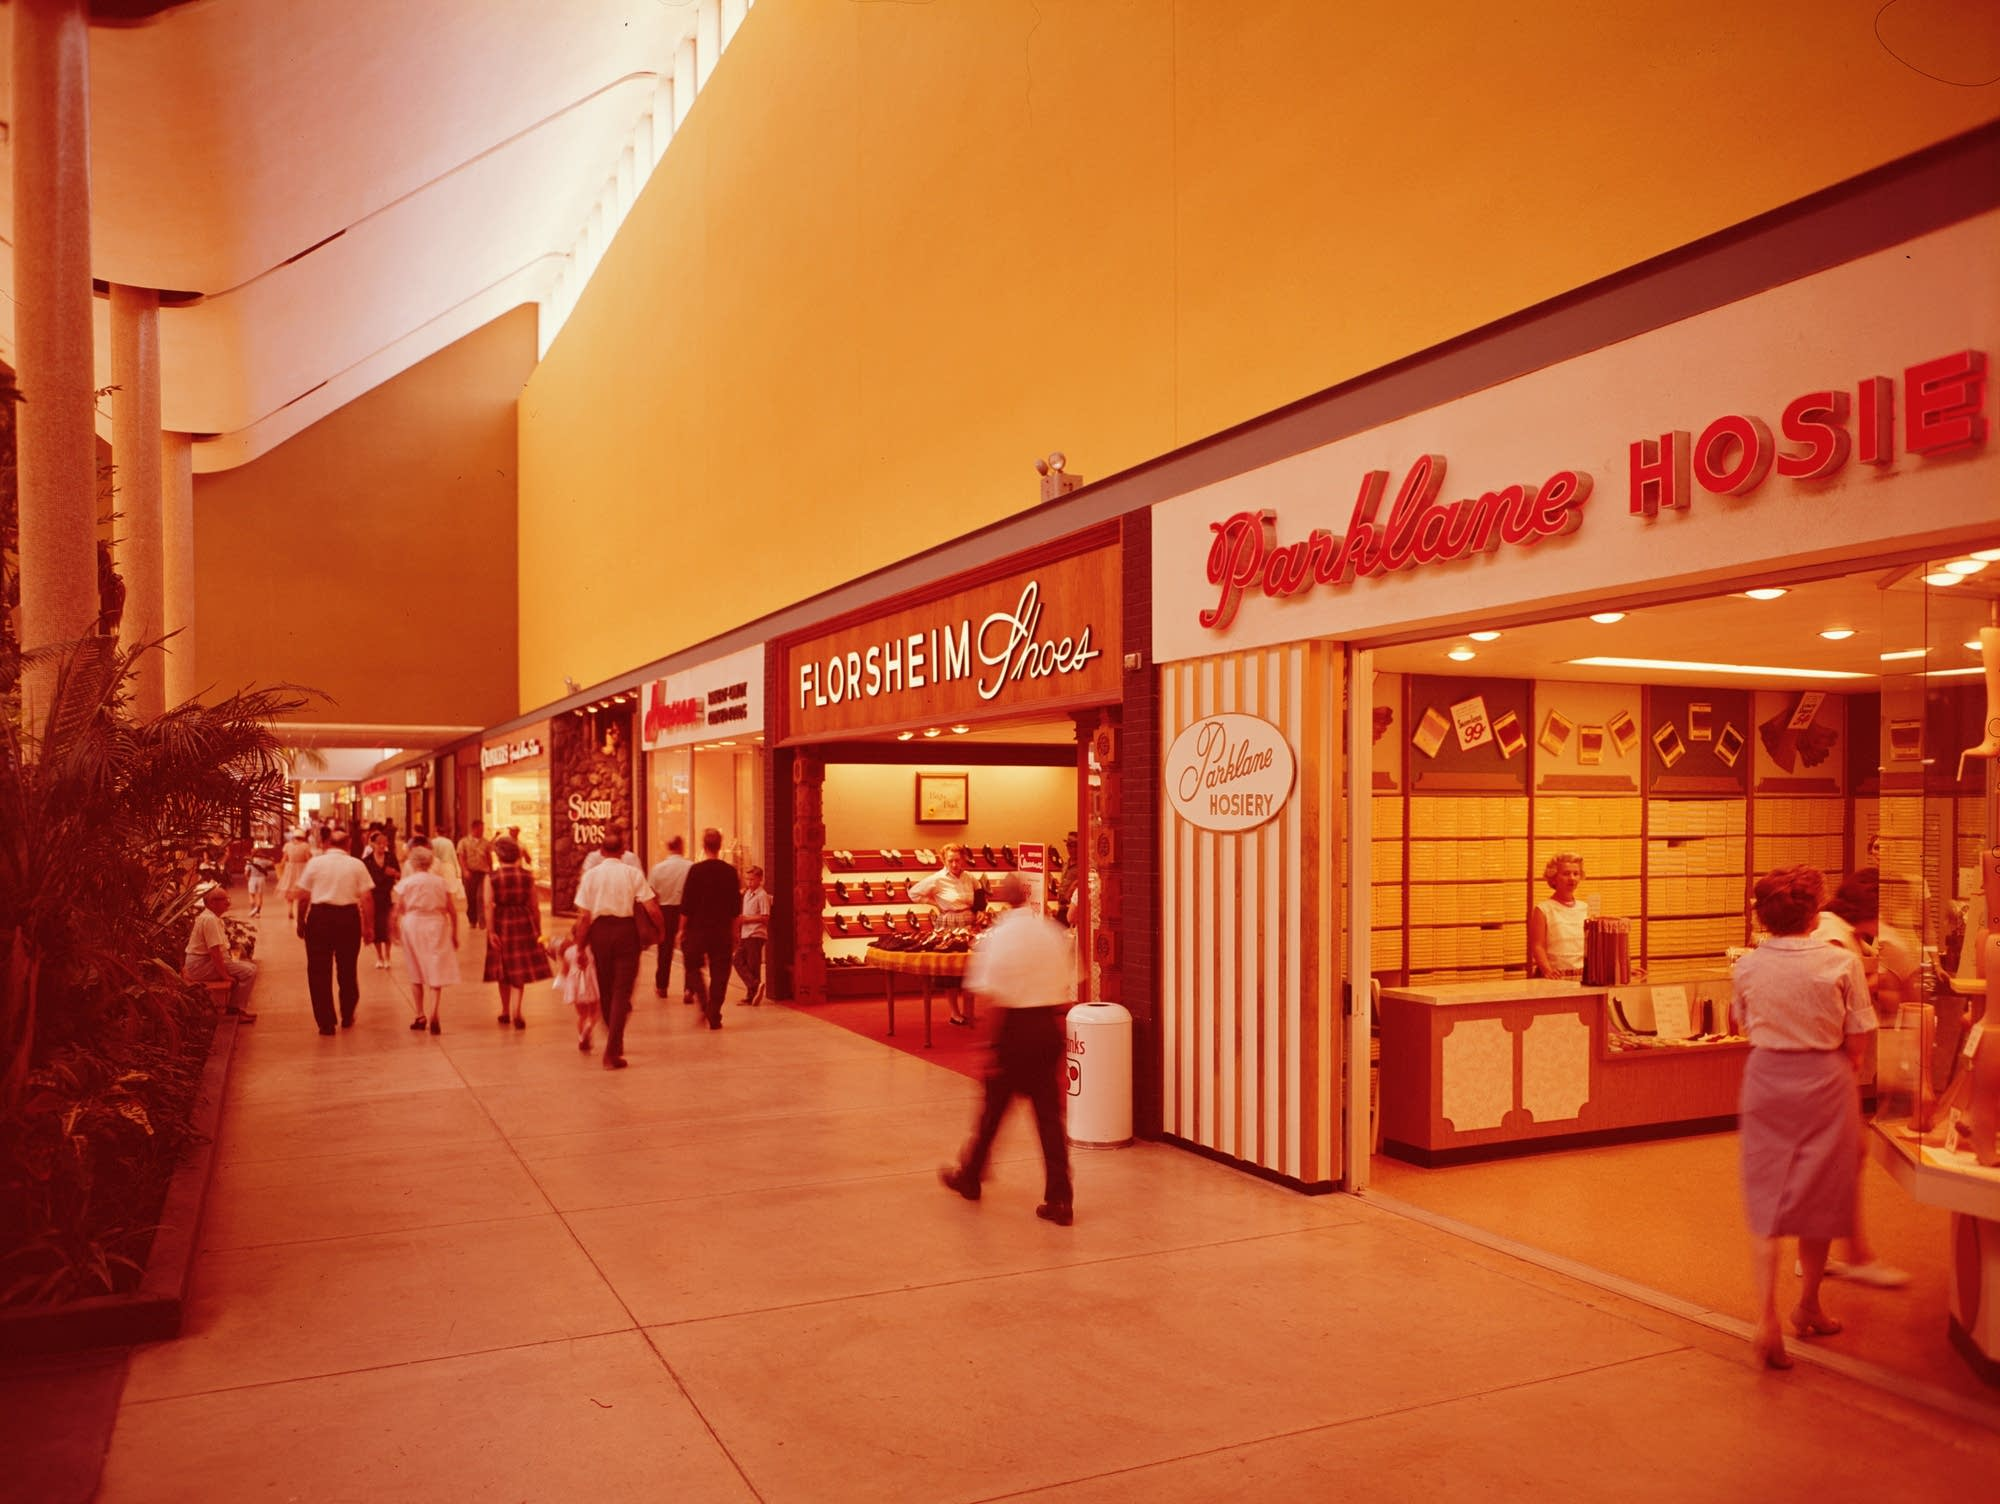 An indoor shopping mall in the 1960s.